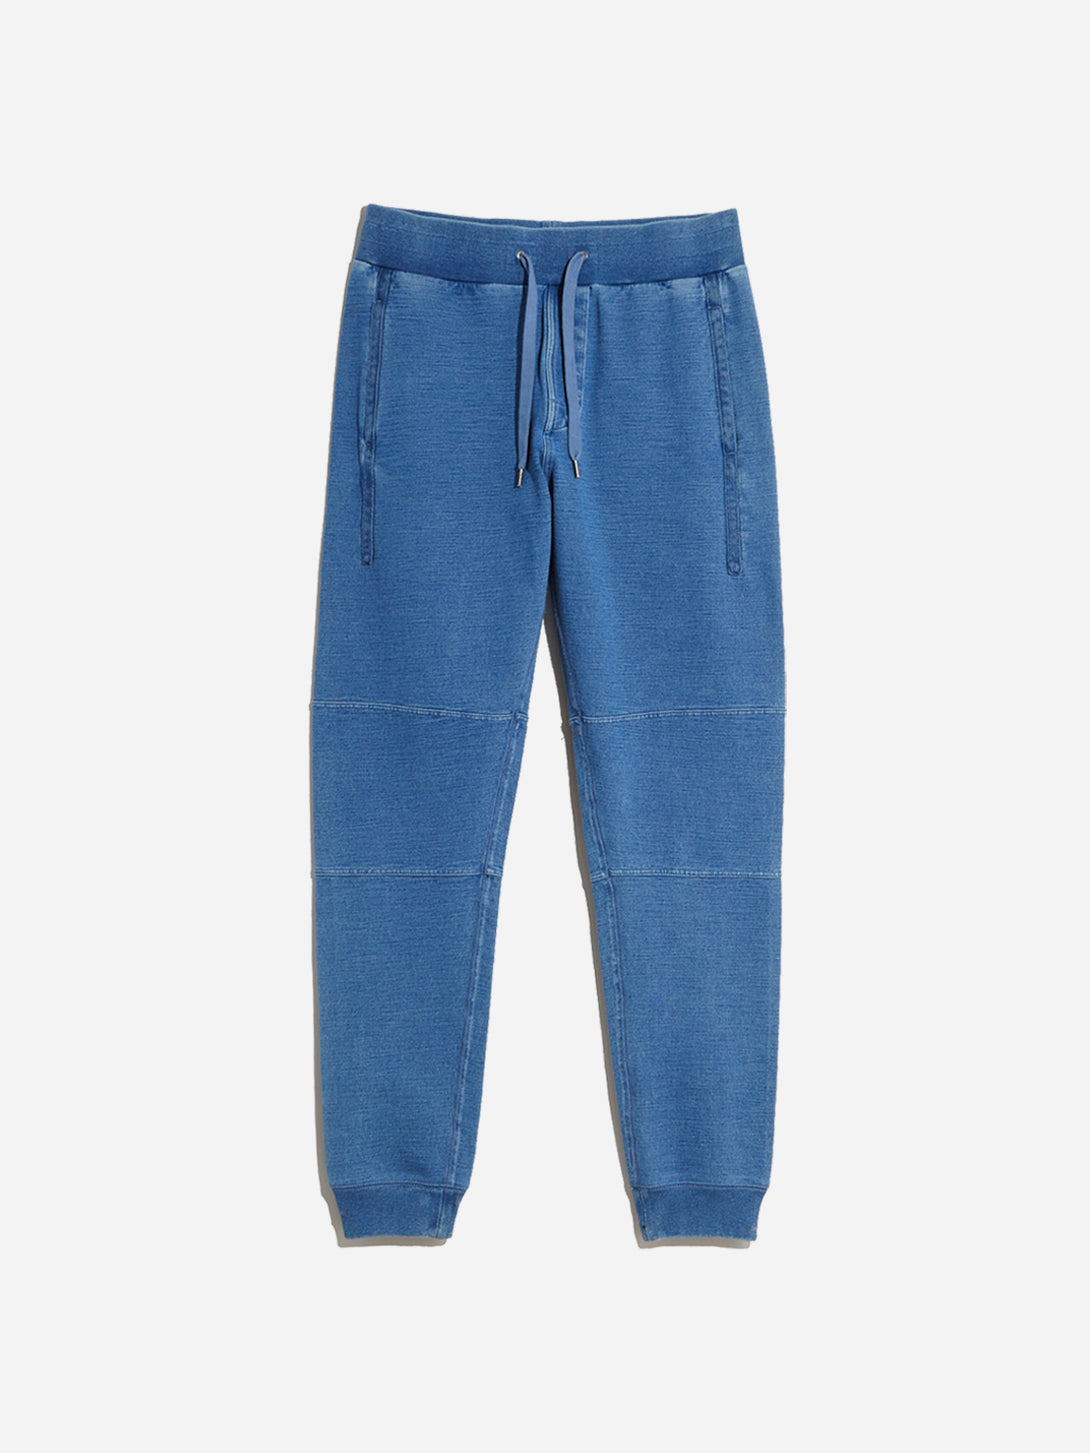 ons garage men's joggers md-indigo